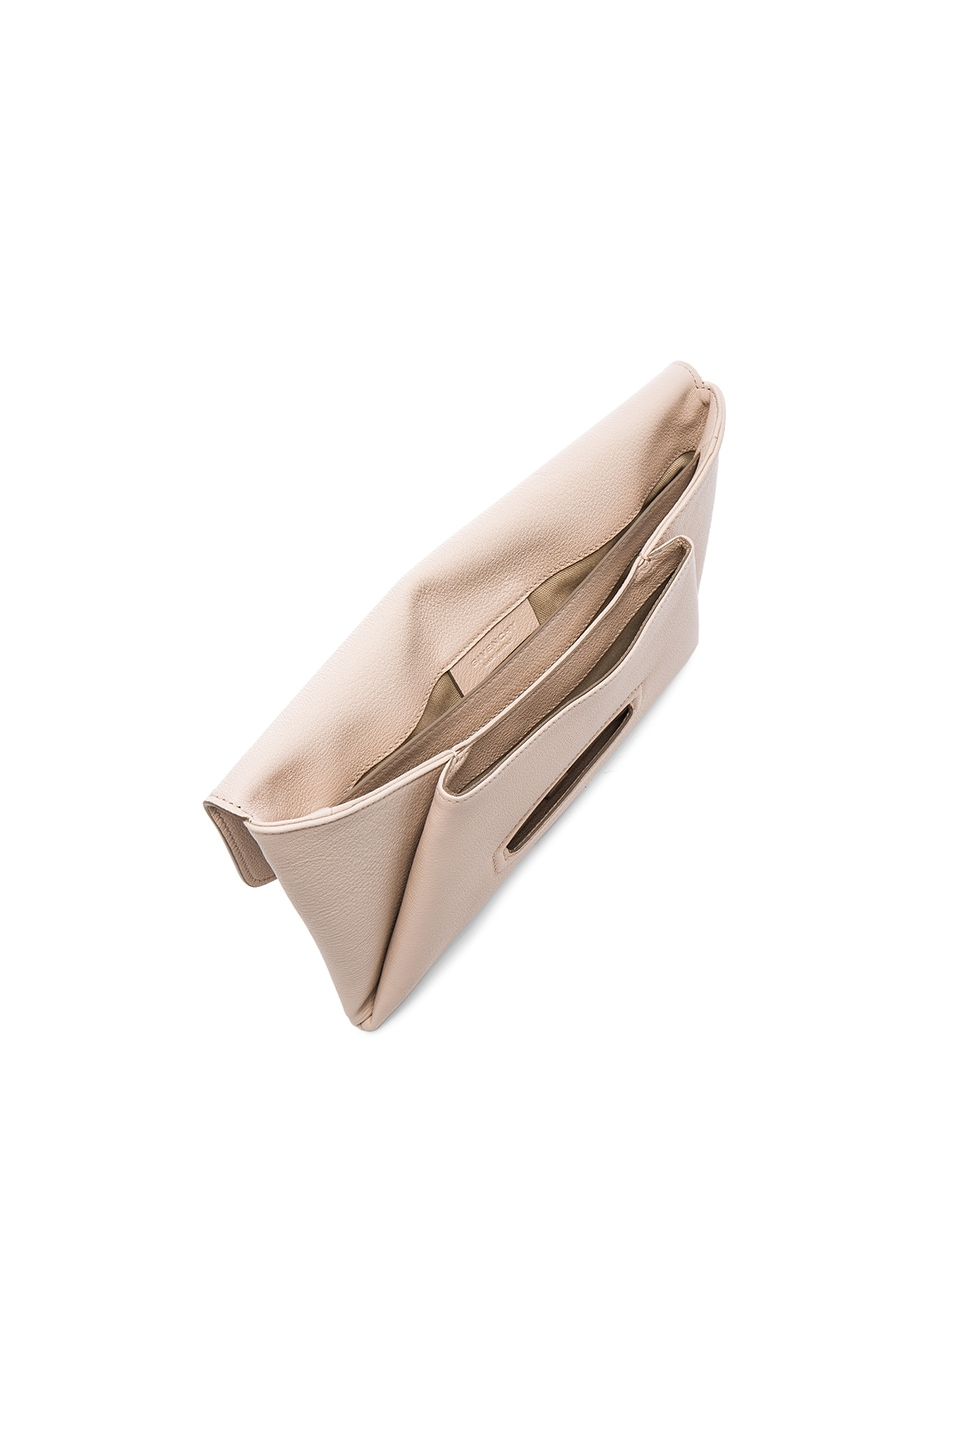 Image 5 of Givenchy Medium Antigona Envelope Clutch in Nude Pink